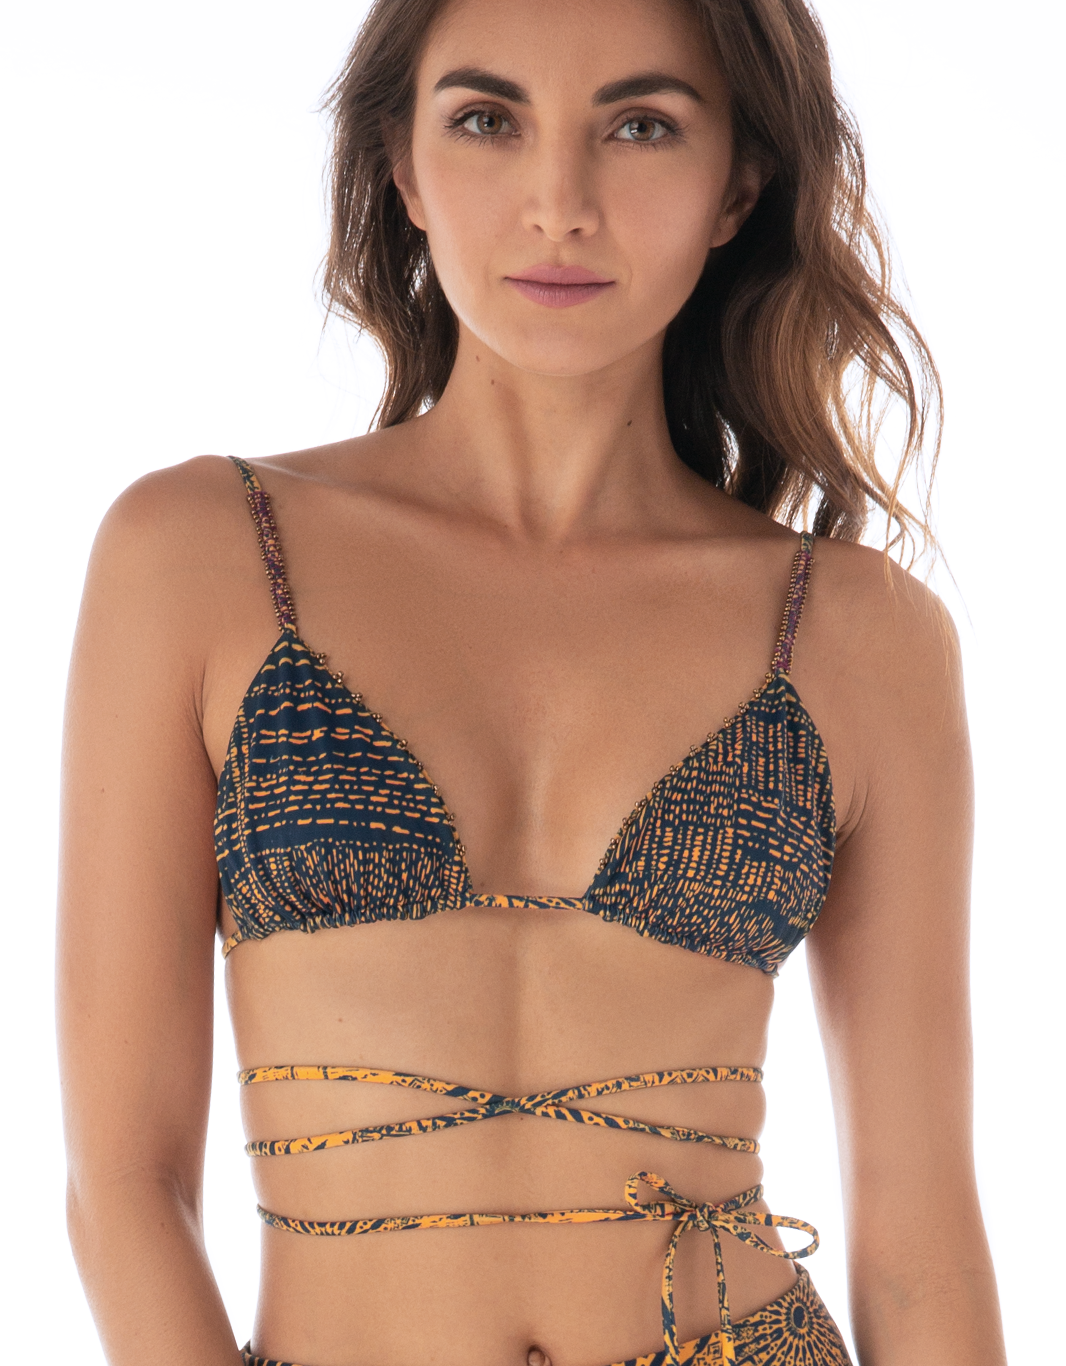 Mar Sole Triangle Bikini Top - Eco Fabric